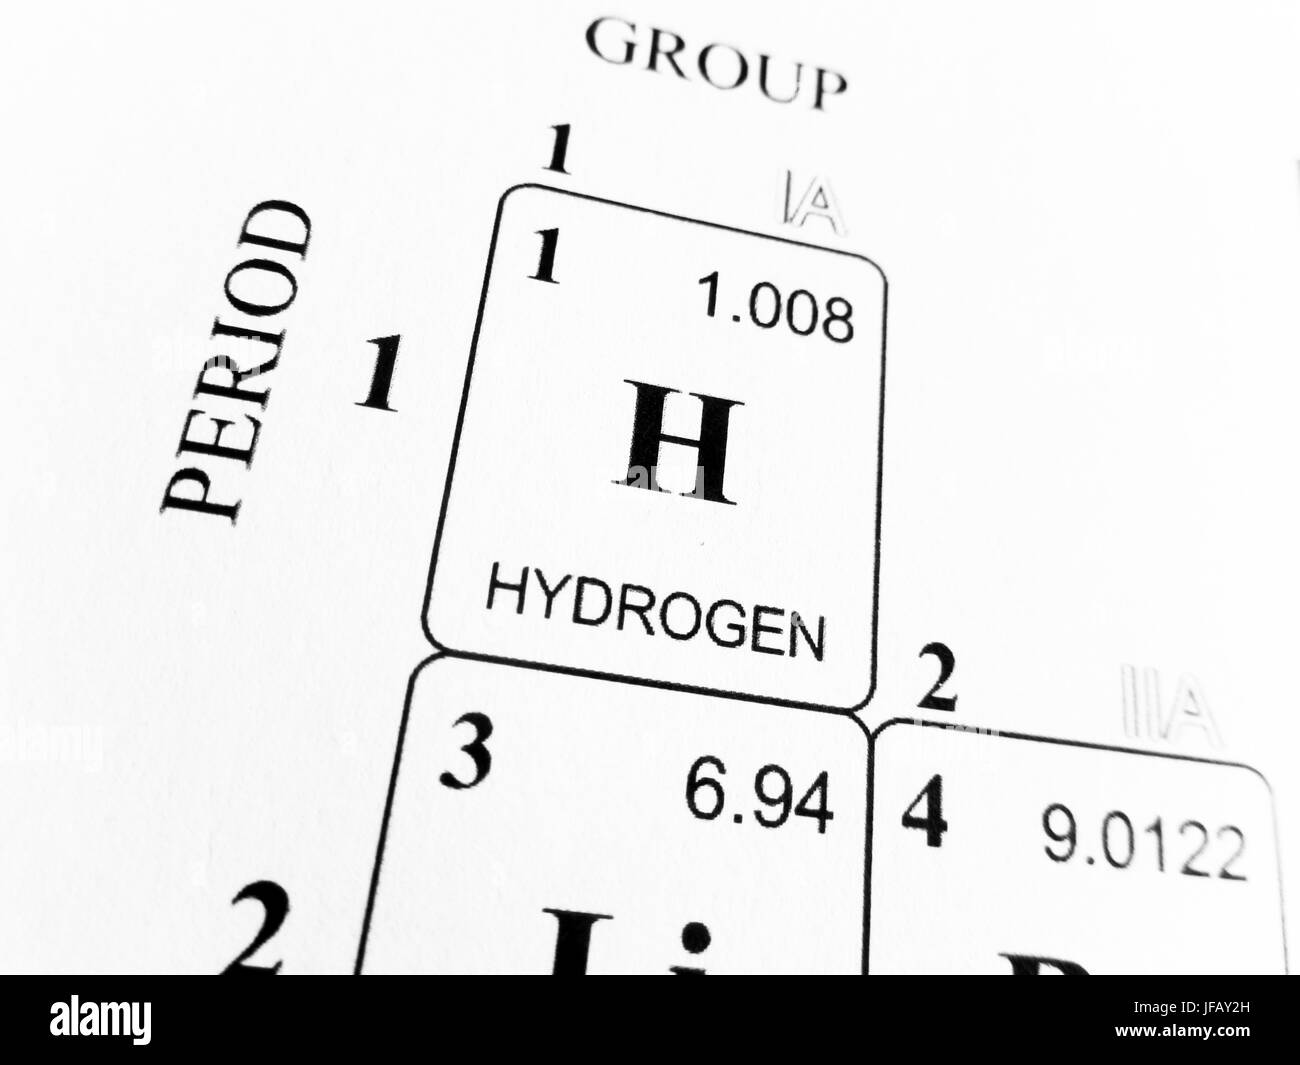 Hydrogen on the periodic table of the elements stock photo hydrogen on the periodic table of the elements gamestrikefo Images